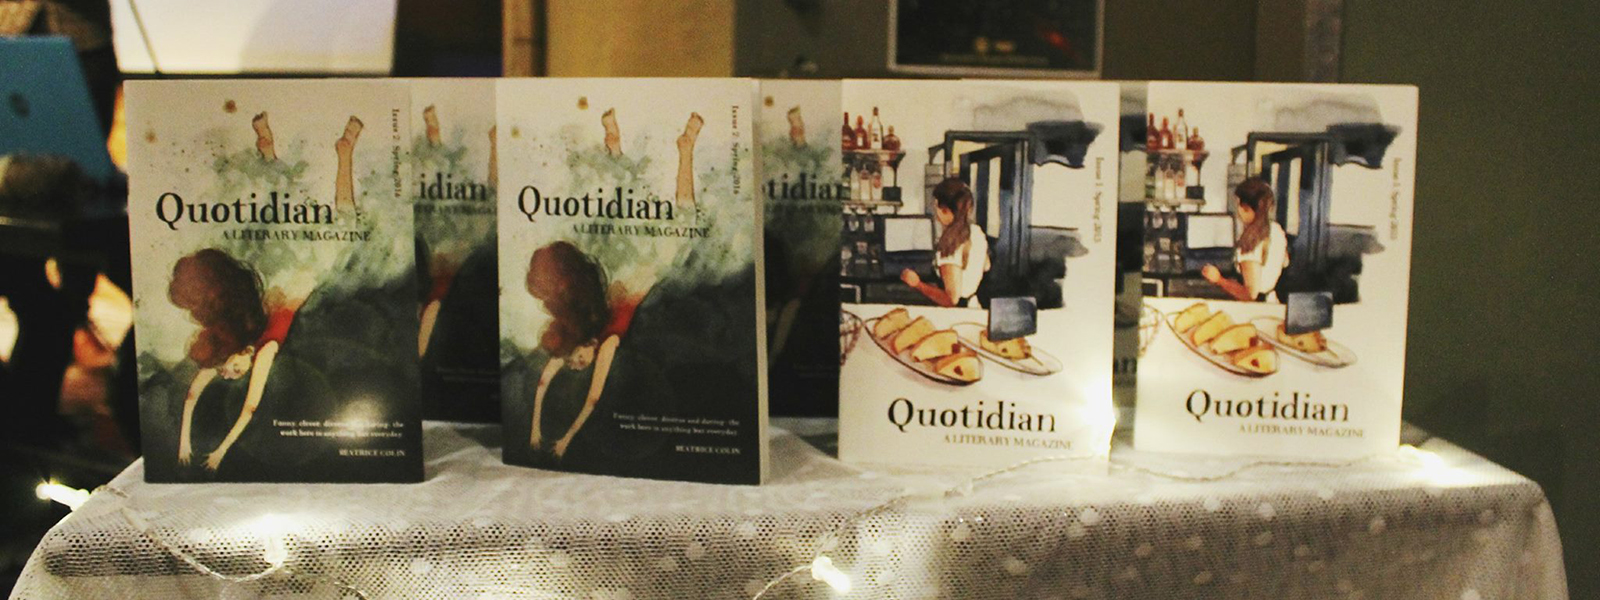 Copies of Quotidian, literary magazine